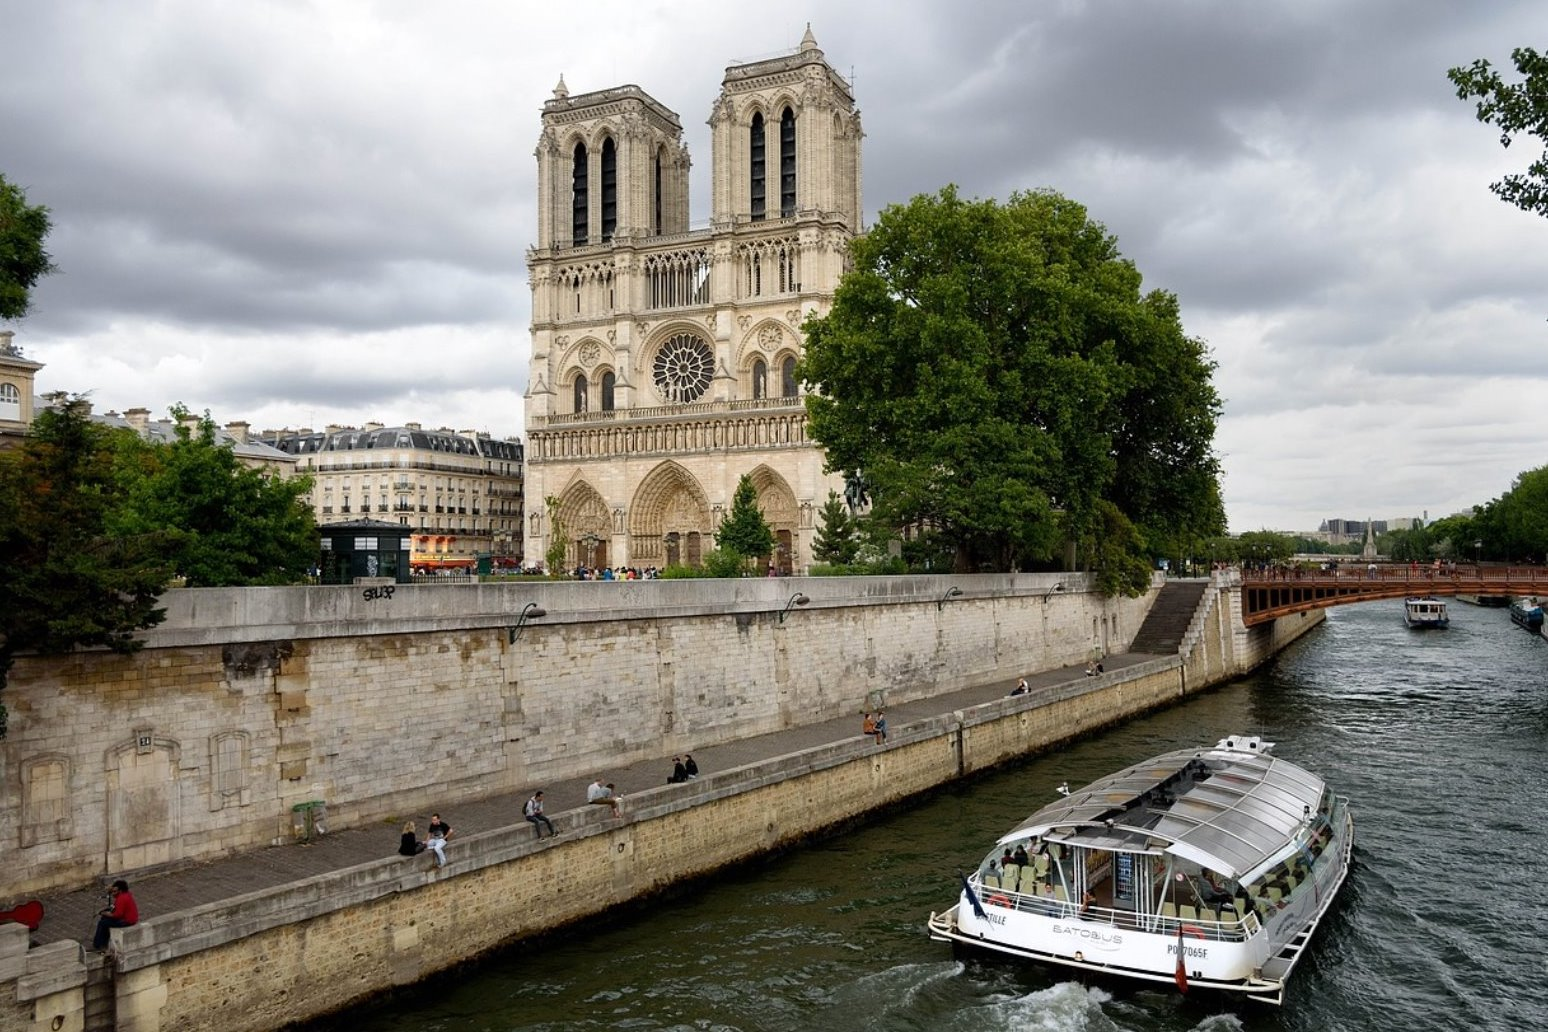 Firefighters dealing with a blaze at Notre Dame cathedral